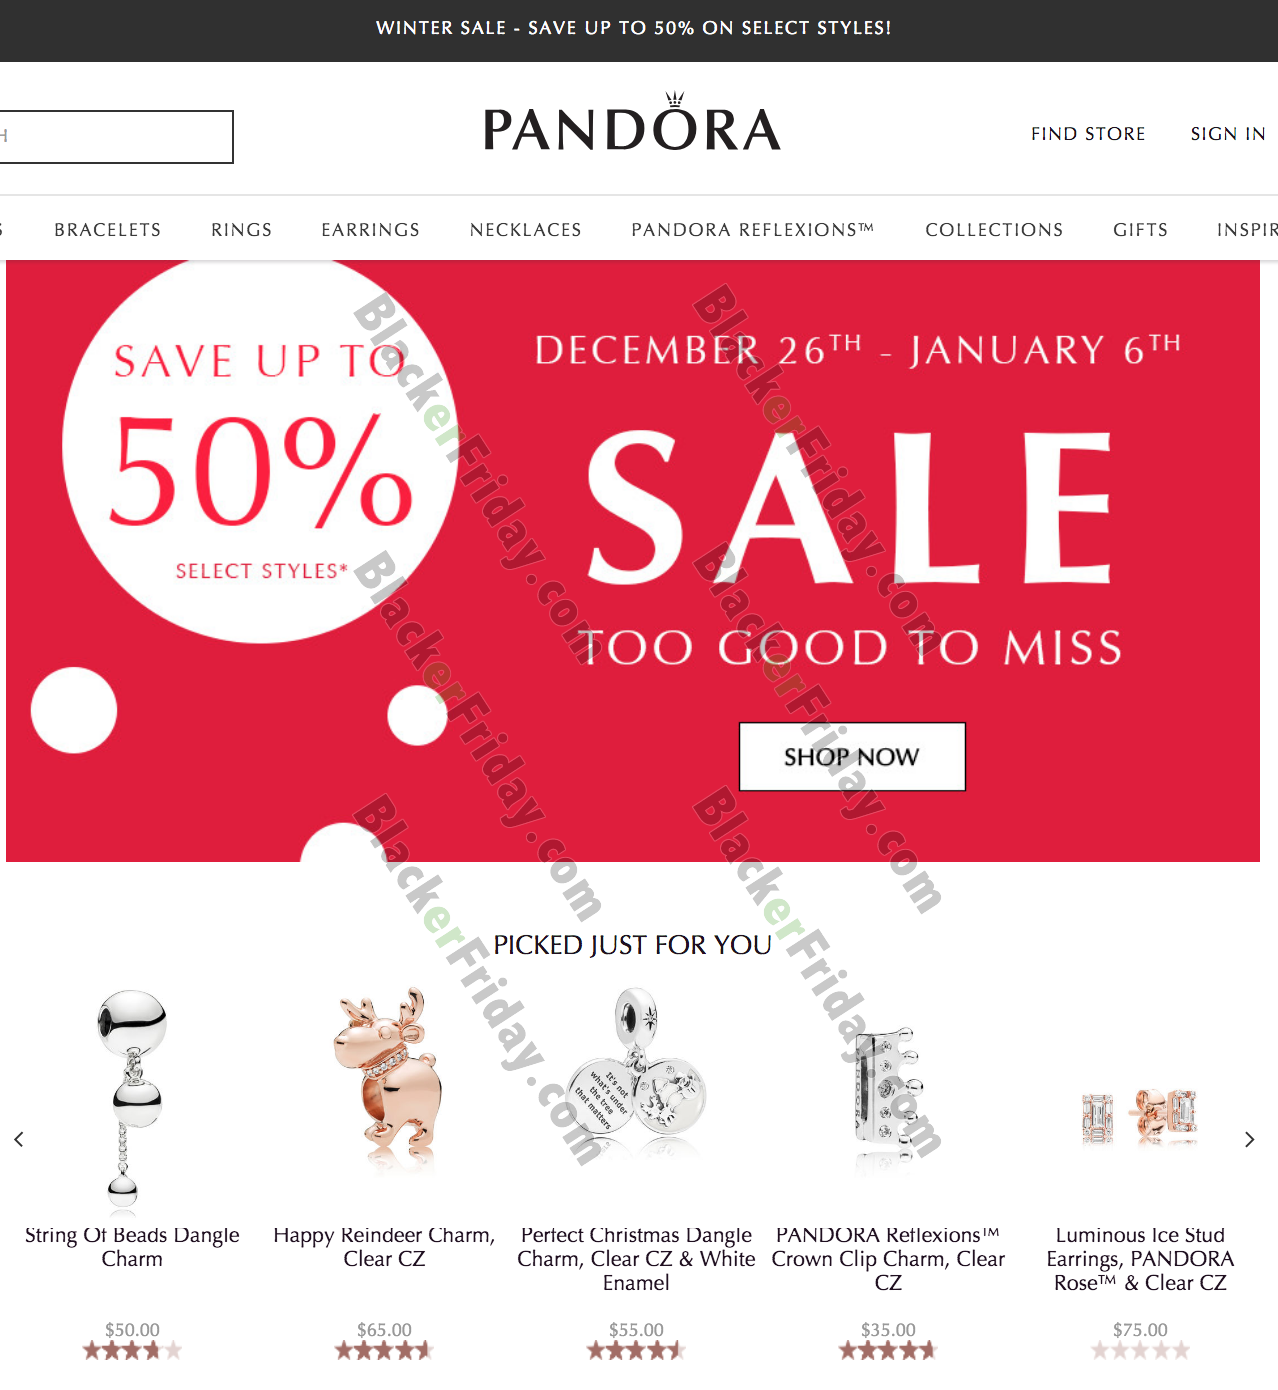 Pandora After Christmas Sale 2021 - What to Expect - Blacker Friday